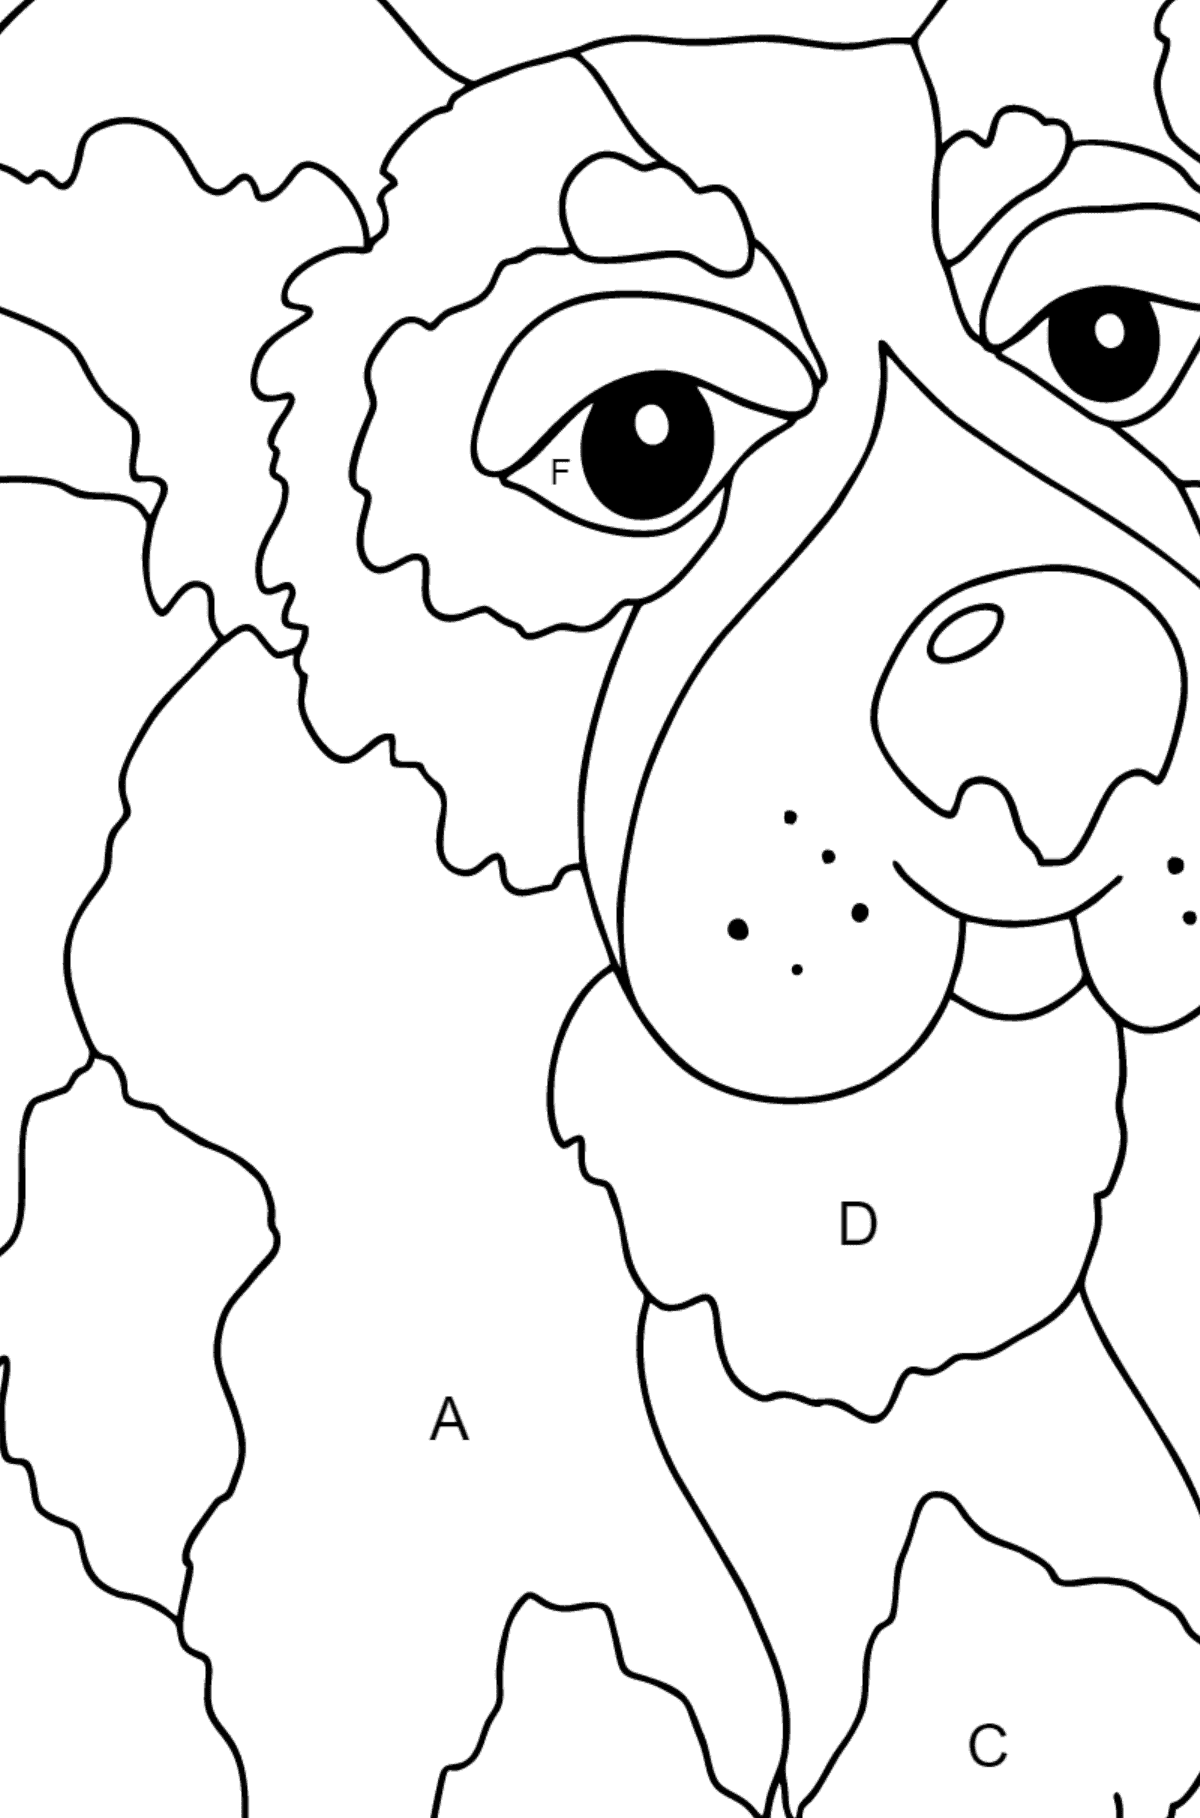 Coloring Page - A Dog is Jumping with a Blue Ball for Children  - Color by Letters